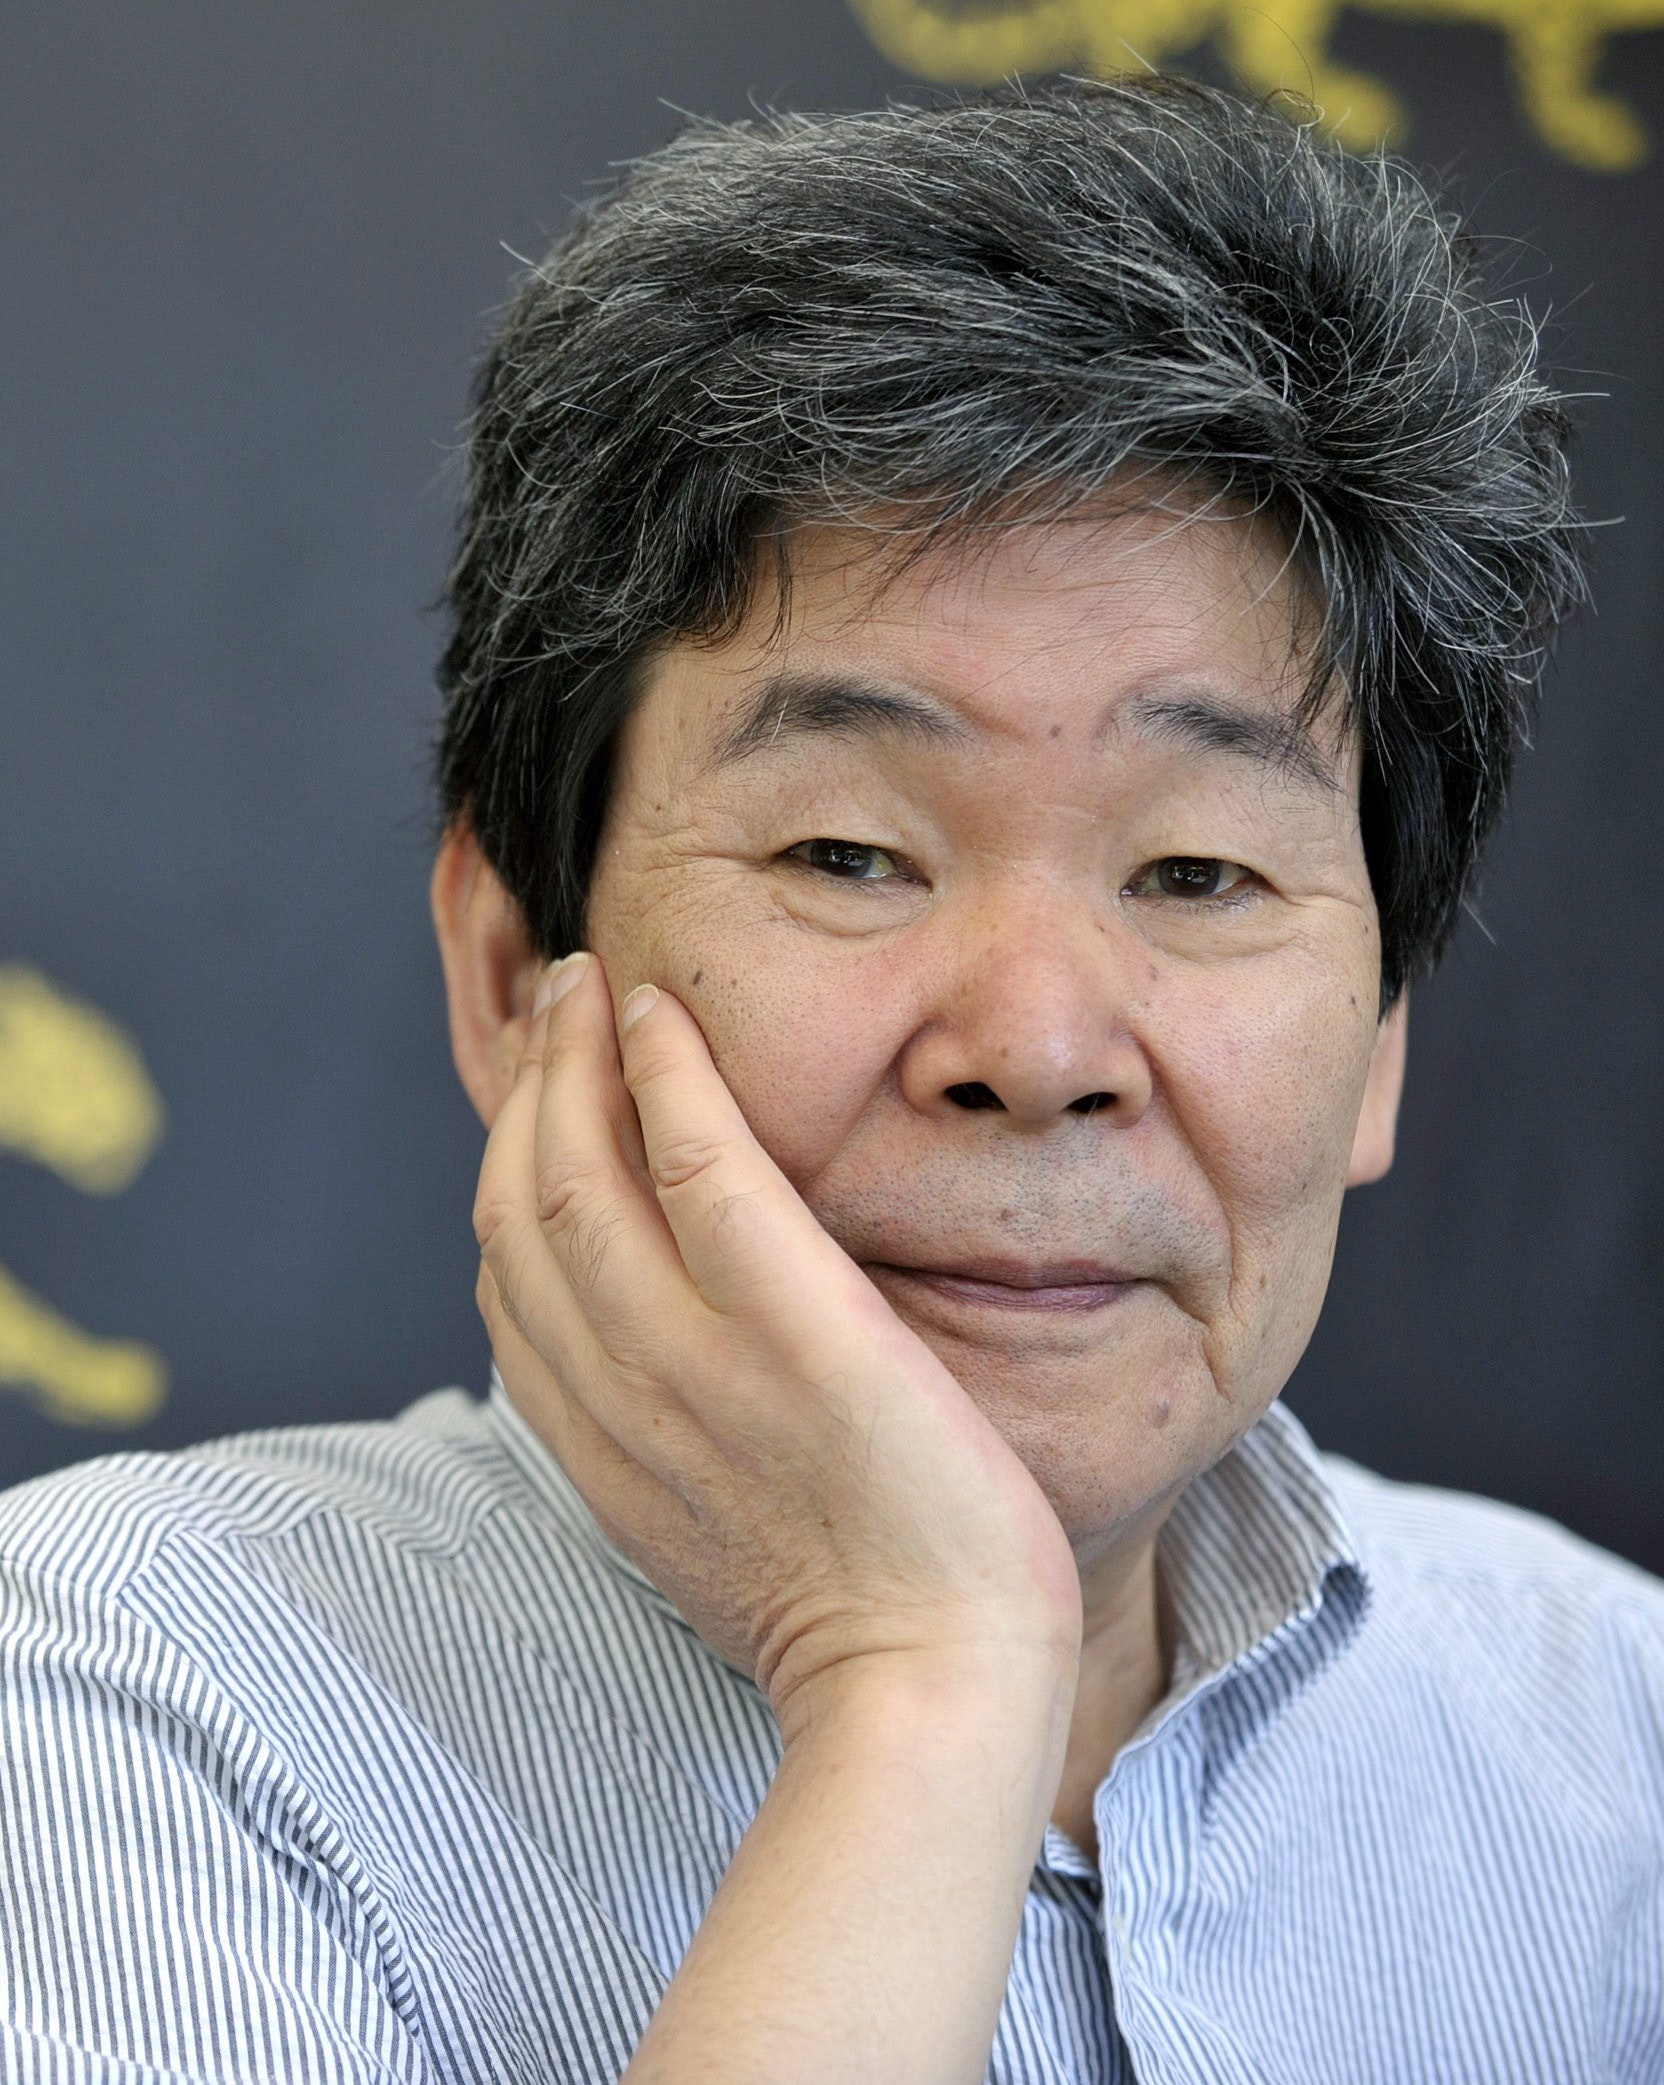 Isao Takahata was a co-founder of Studio Ghibli, Japan's famous animation studio. Photo credit: EPA, CC BY-SA.